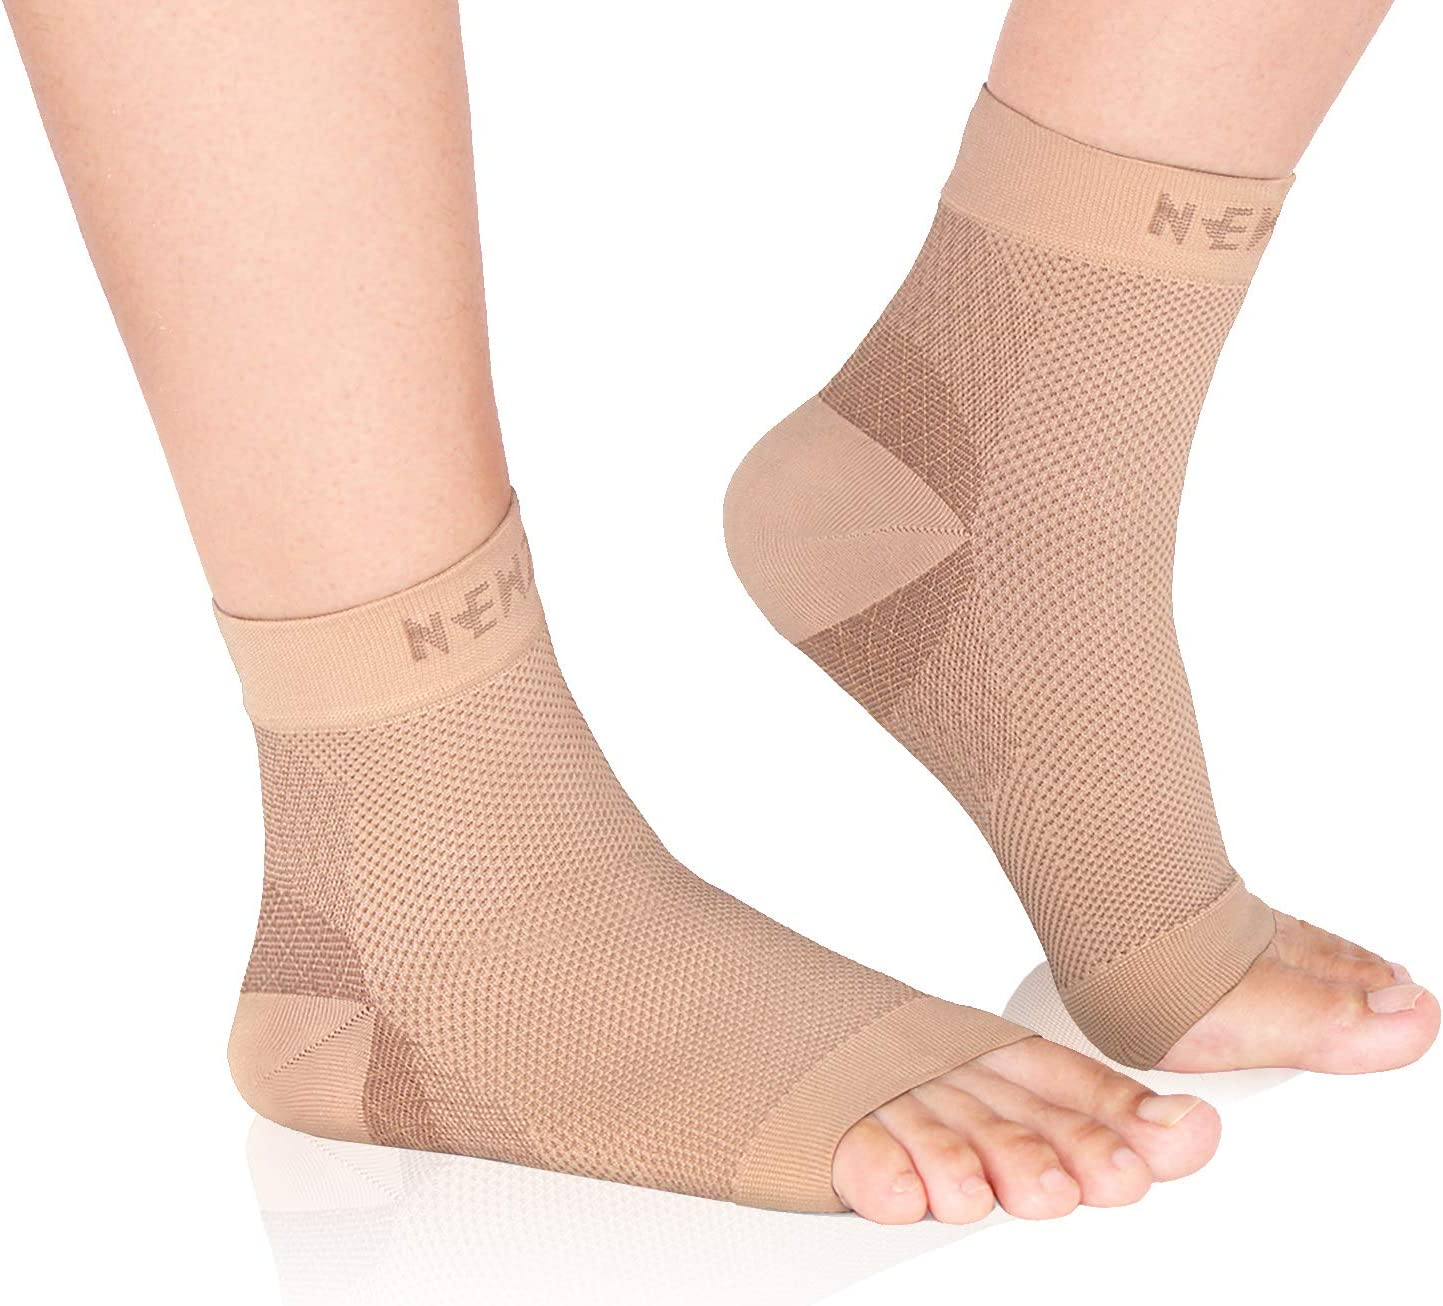 NEWZILL Plantar Fasciitis Purchase Socks with Arch Car Limited price 7 24 Foot Support